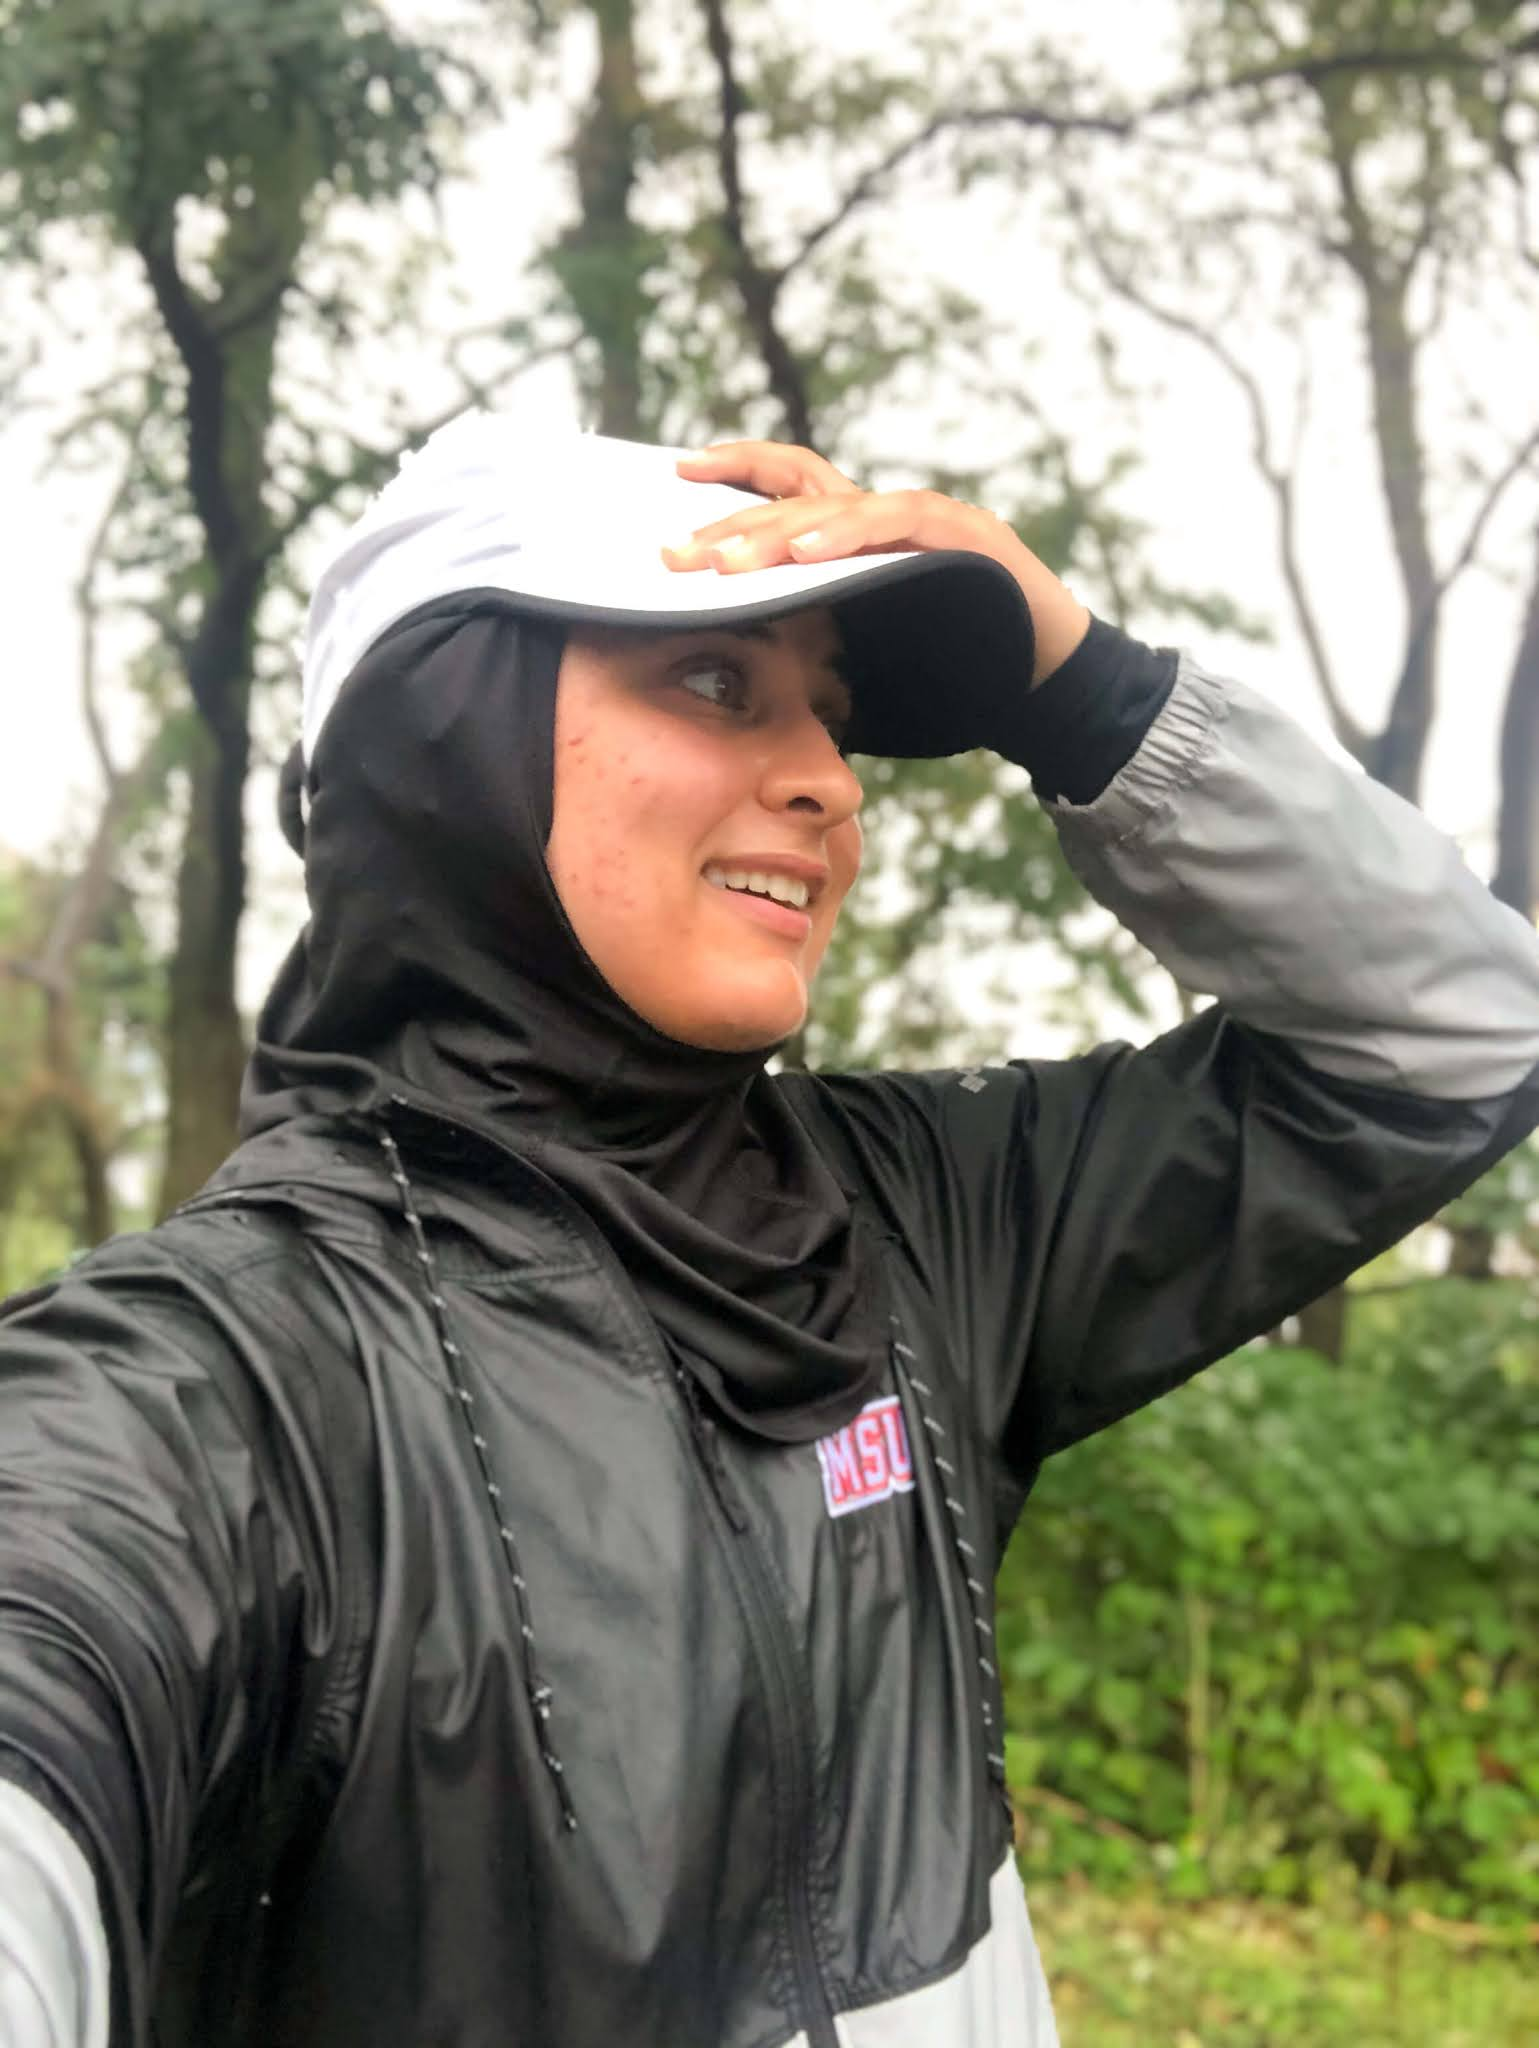 Sahara, in running rain coat with nike cap smiling head tilted away from camera; side profile